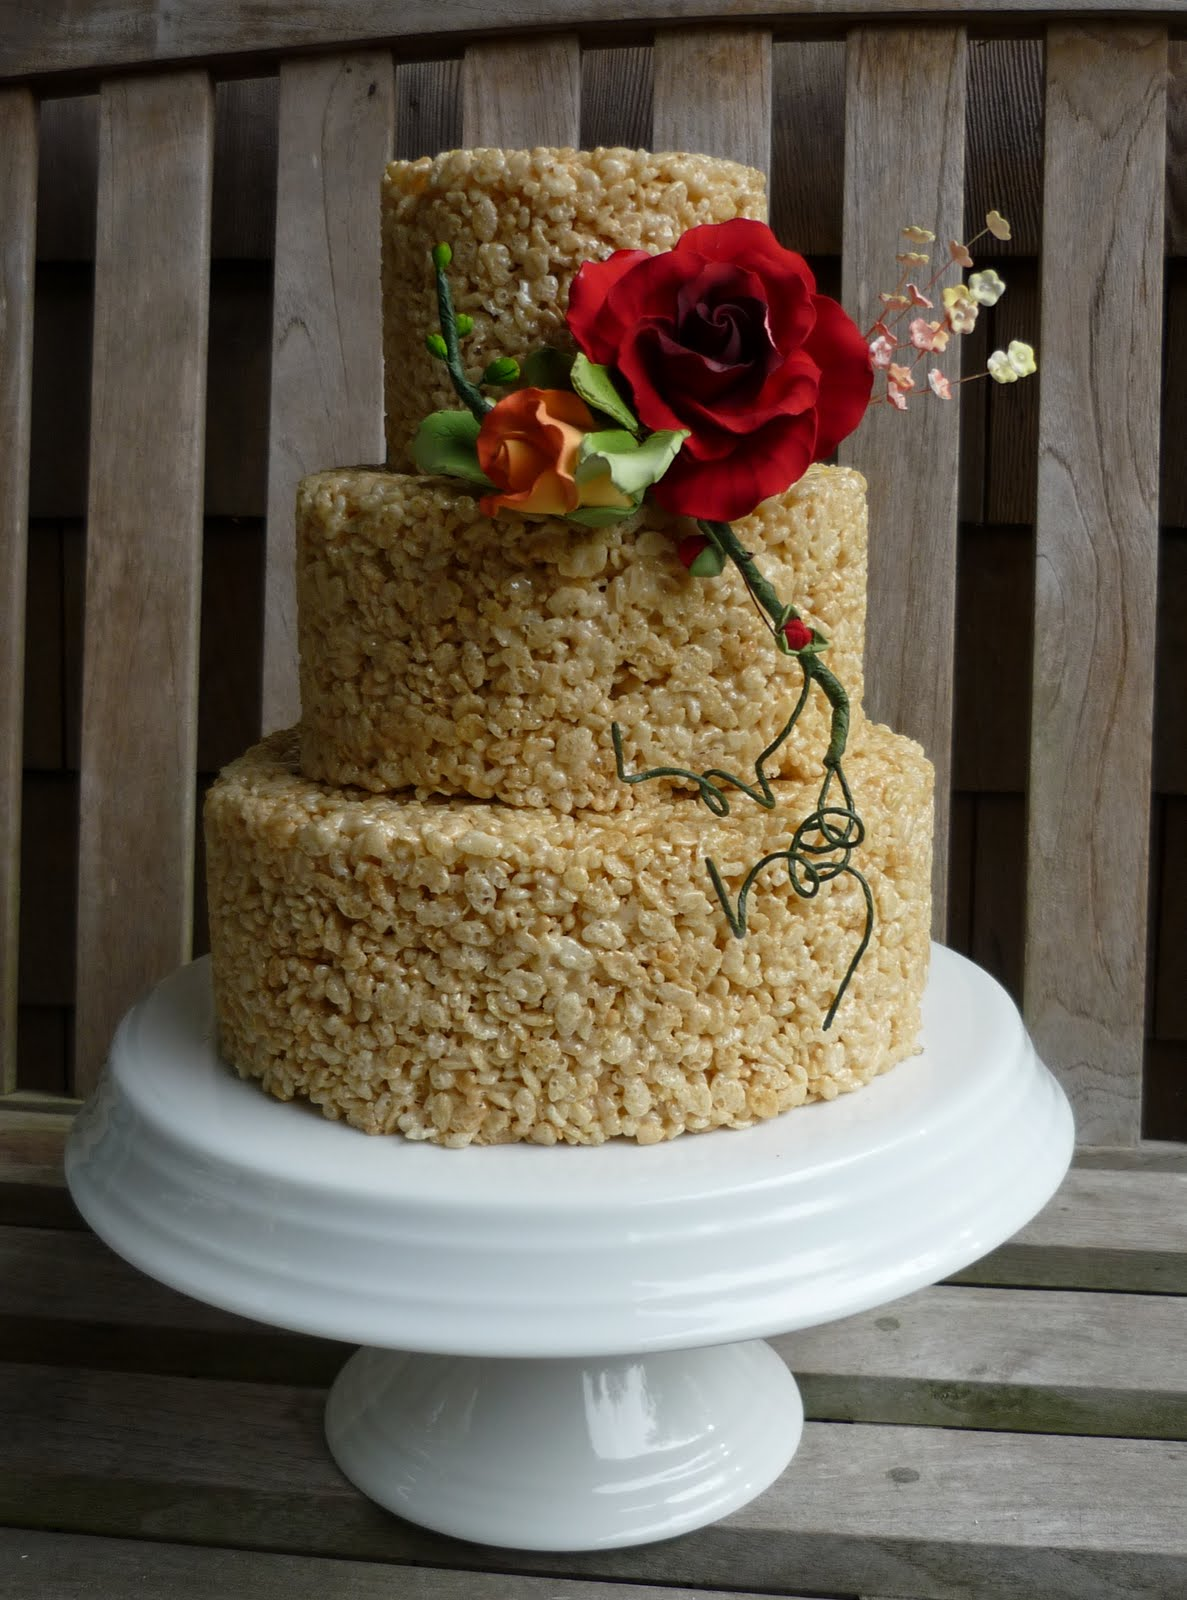 How To Make Rice Crispy Treats For Cake Decorating